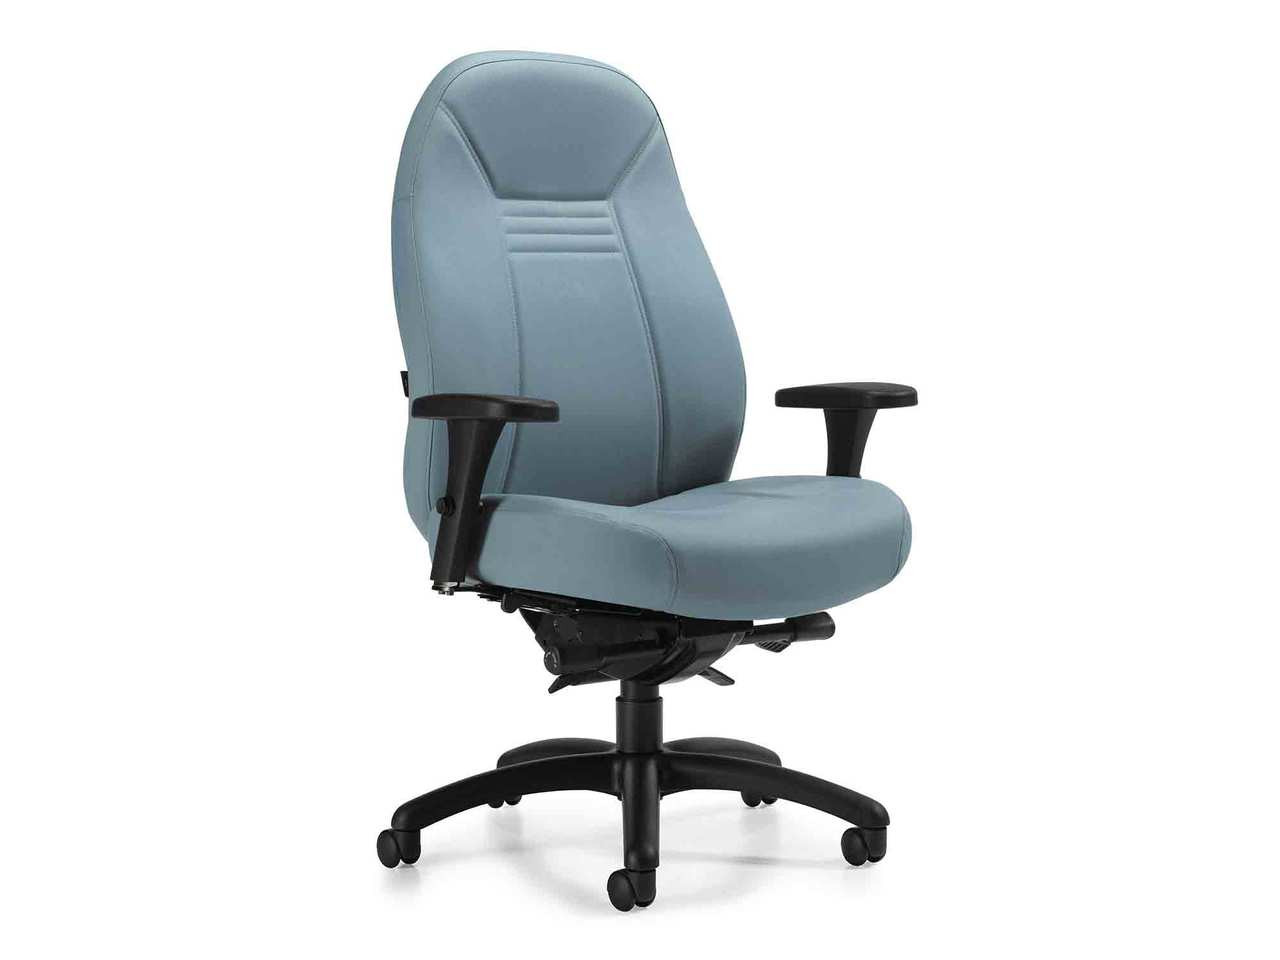 xl desk chair summer infant beach obusforme comfort office furniture warehouse image 1 2